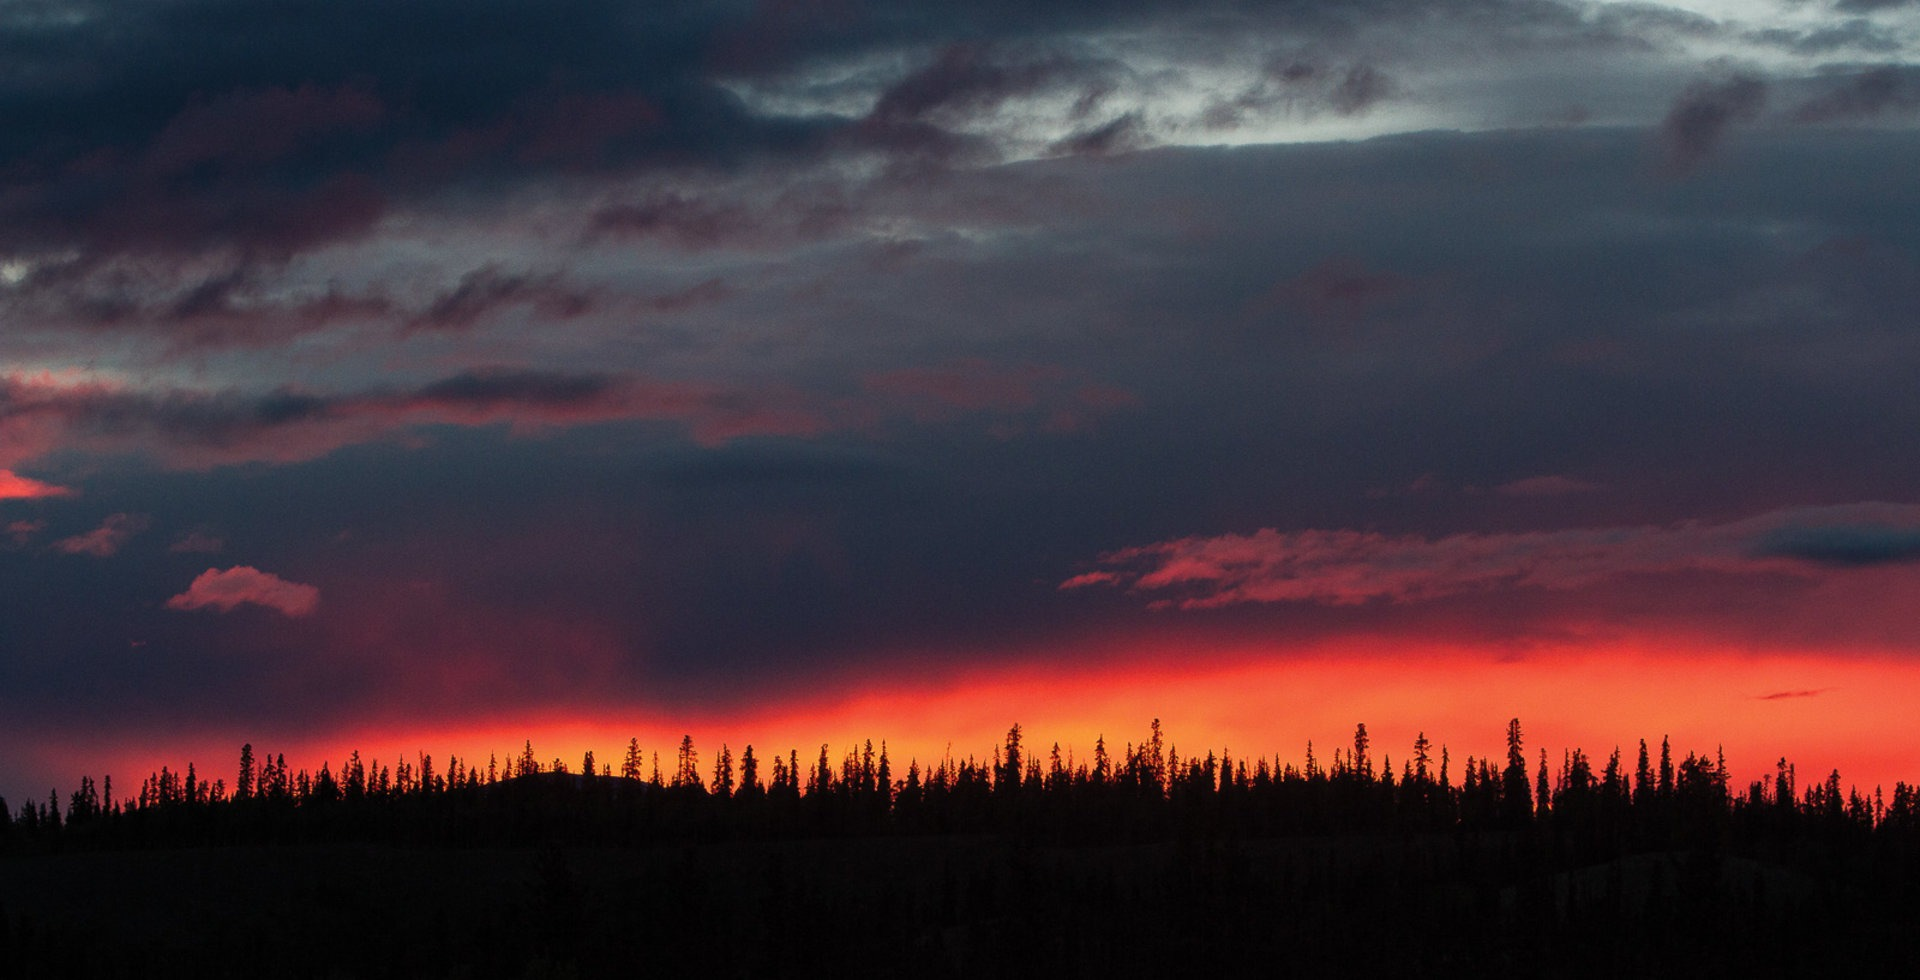 Sunsets in the Yukon never seem to end - which makes sense considering daylight can last 19 hours. A particularly colorful evening, viewed from the hot tub at the Boreale Ranch.